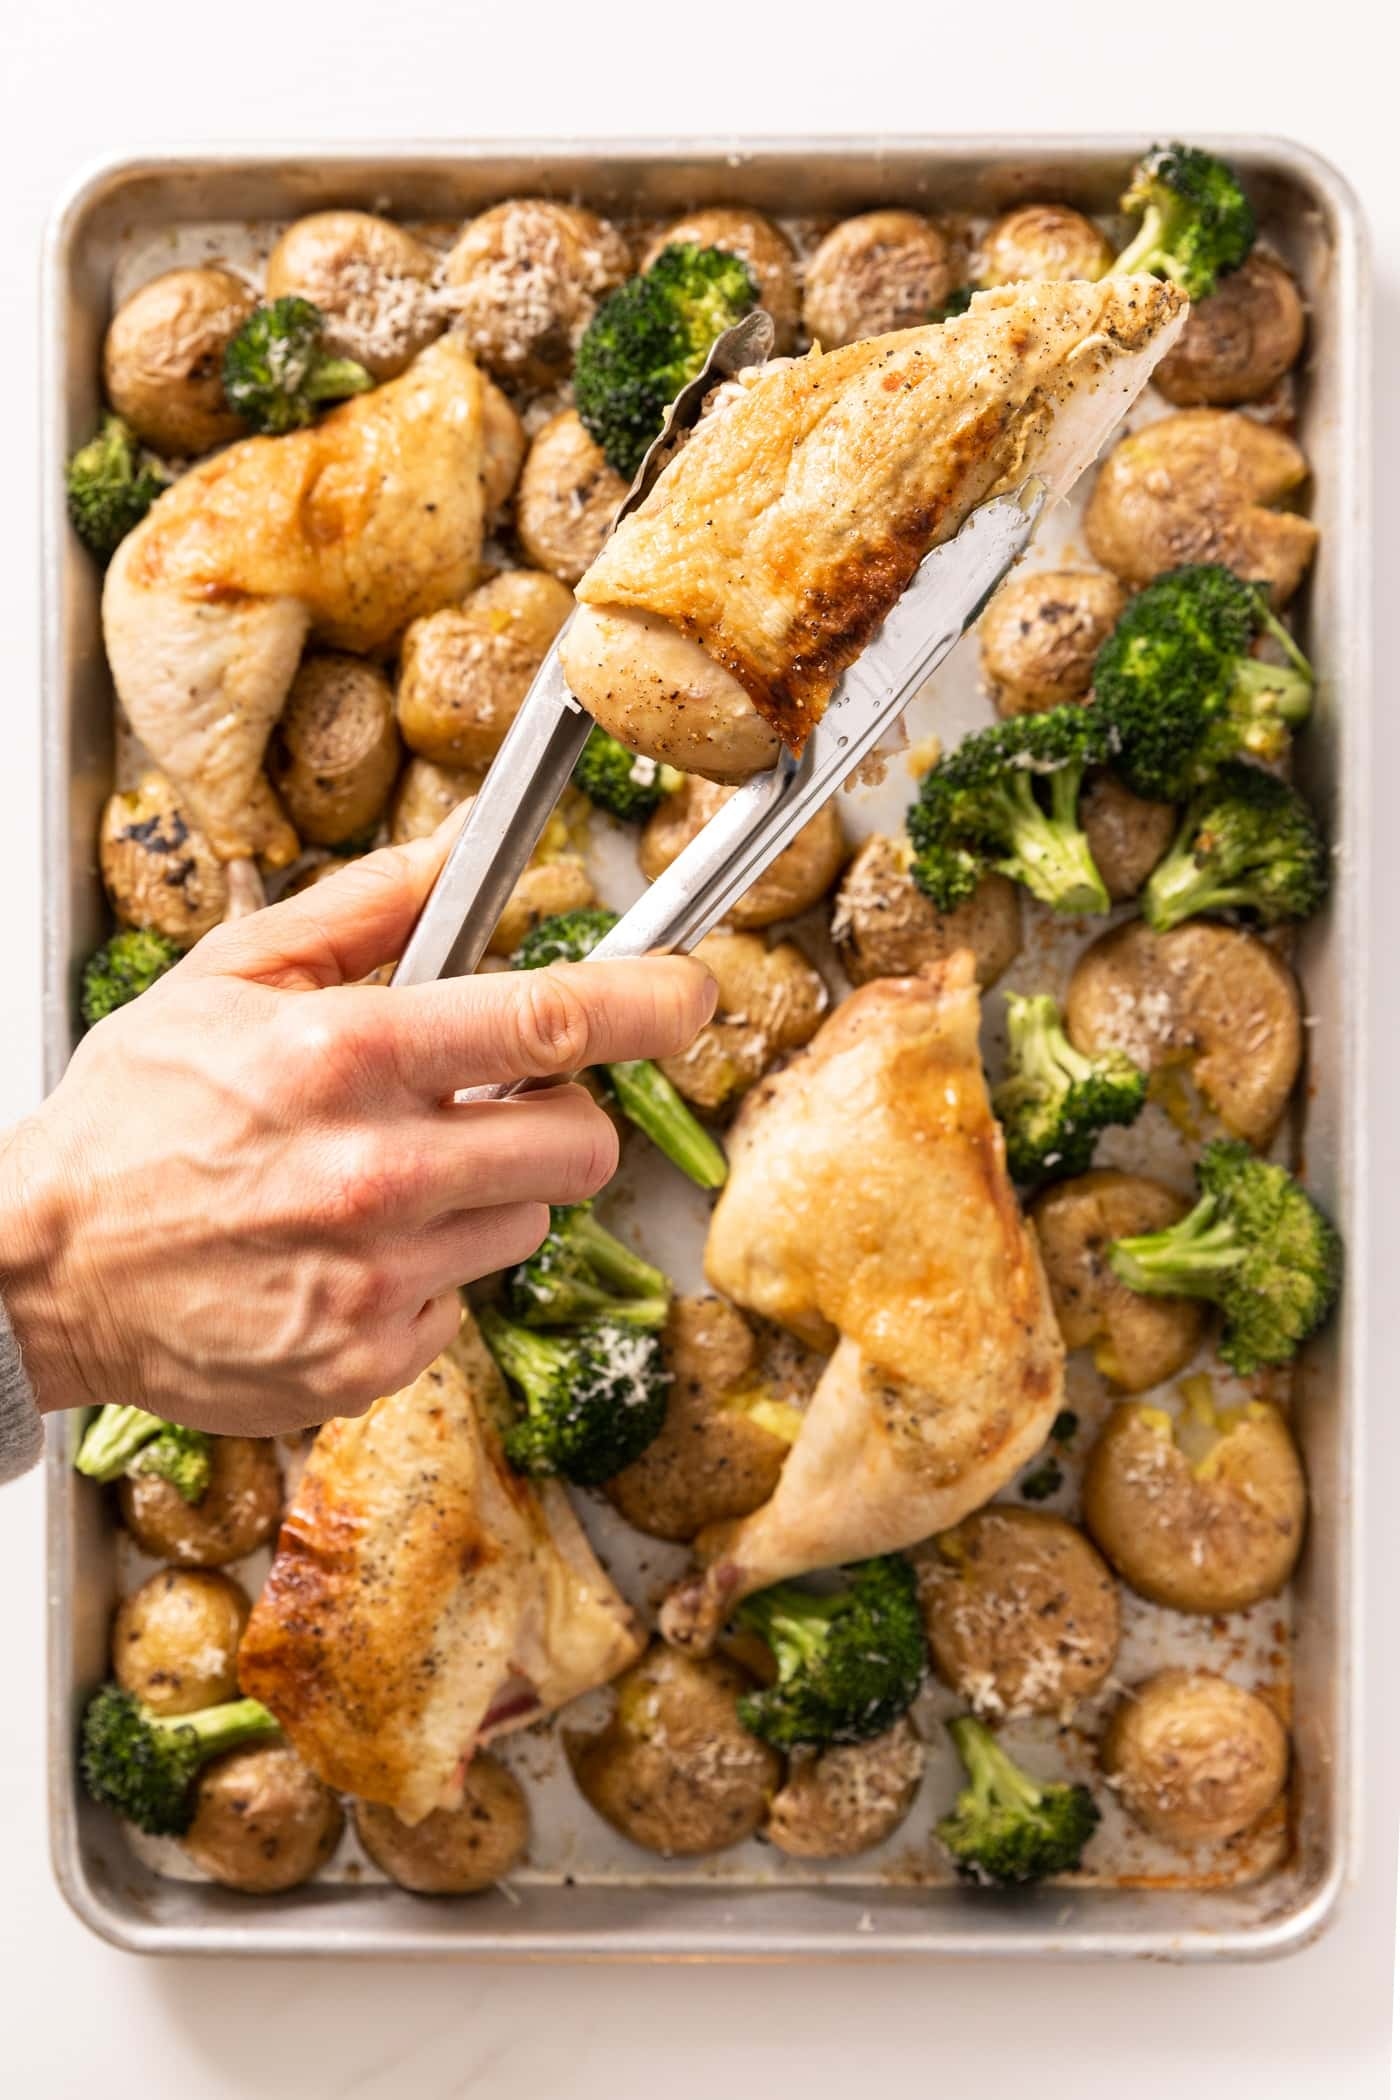 Top down view of hand holding roasted chicken breast over a sheet pan filled with other chicken breasts and broccoli and potatoes